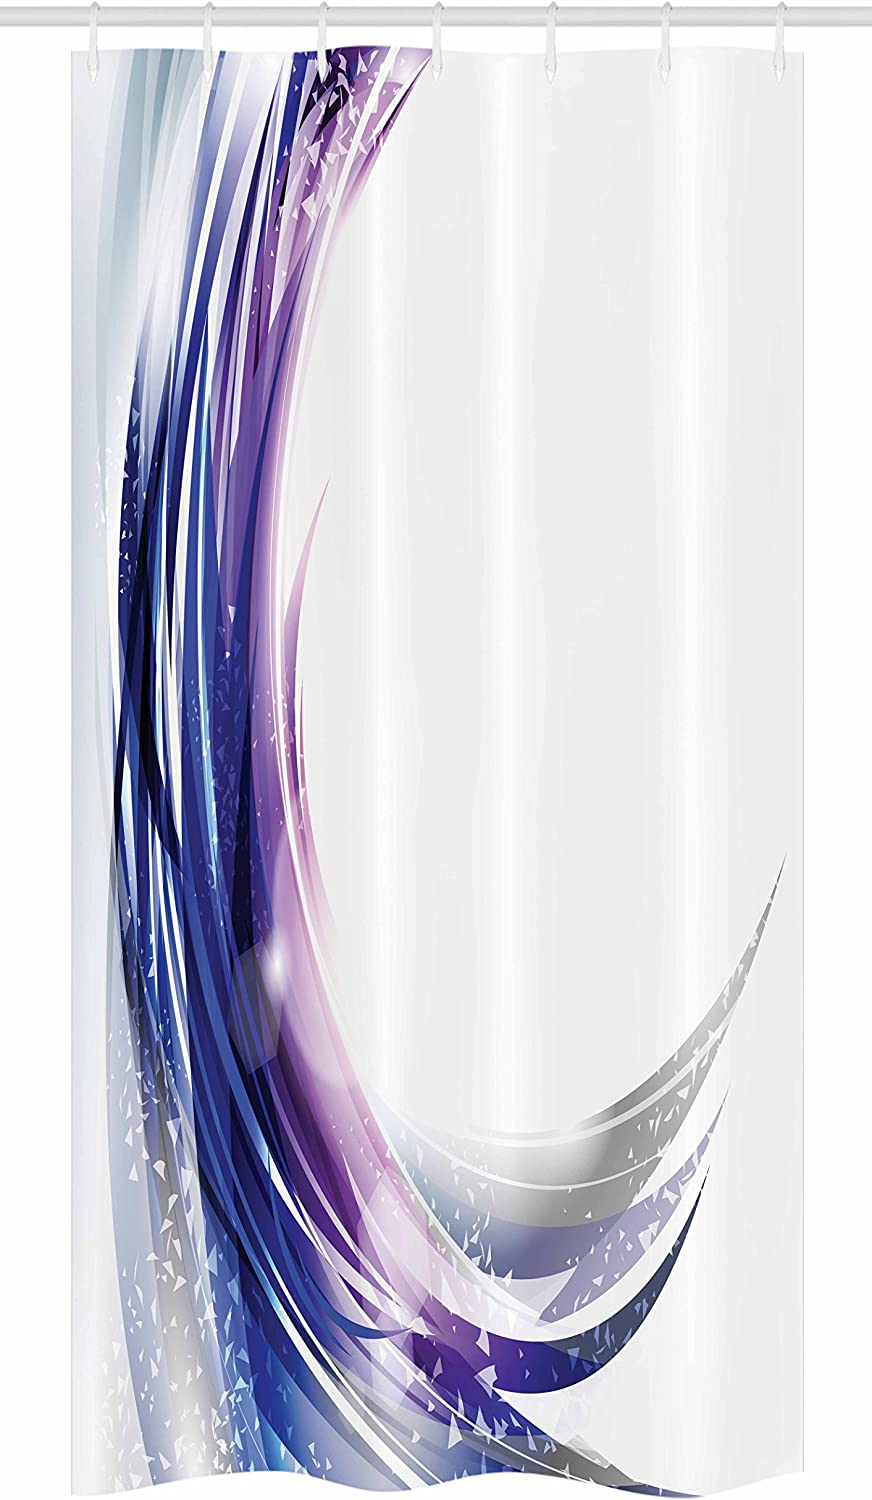 """Ambesonne Abstract Stall Shower Curtain, Cool Wave Like Ombre Design with Vibrant Color Dots Artwork, Fabric Bathroom Decor Set with Hooks, 36"""" X 72"""", Purple Blue"""